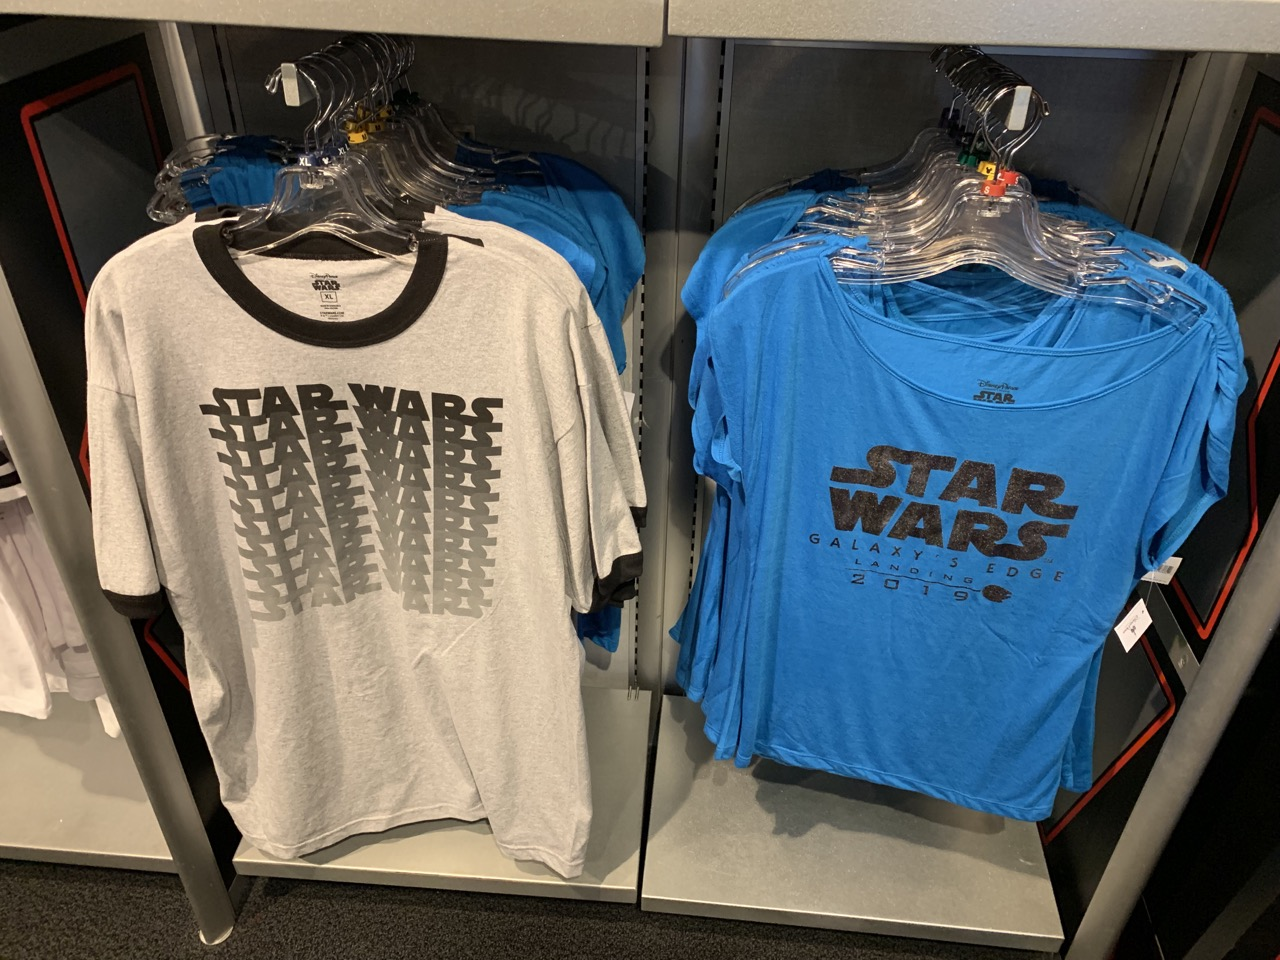 disney world trip report early summer 2019 day two 56 galaxys edge gear 2.jpeg